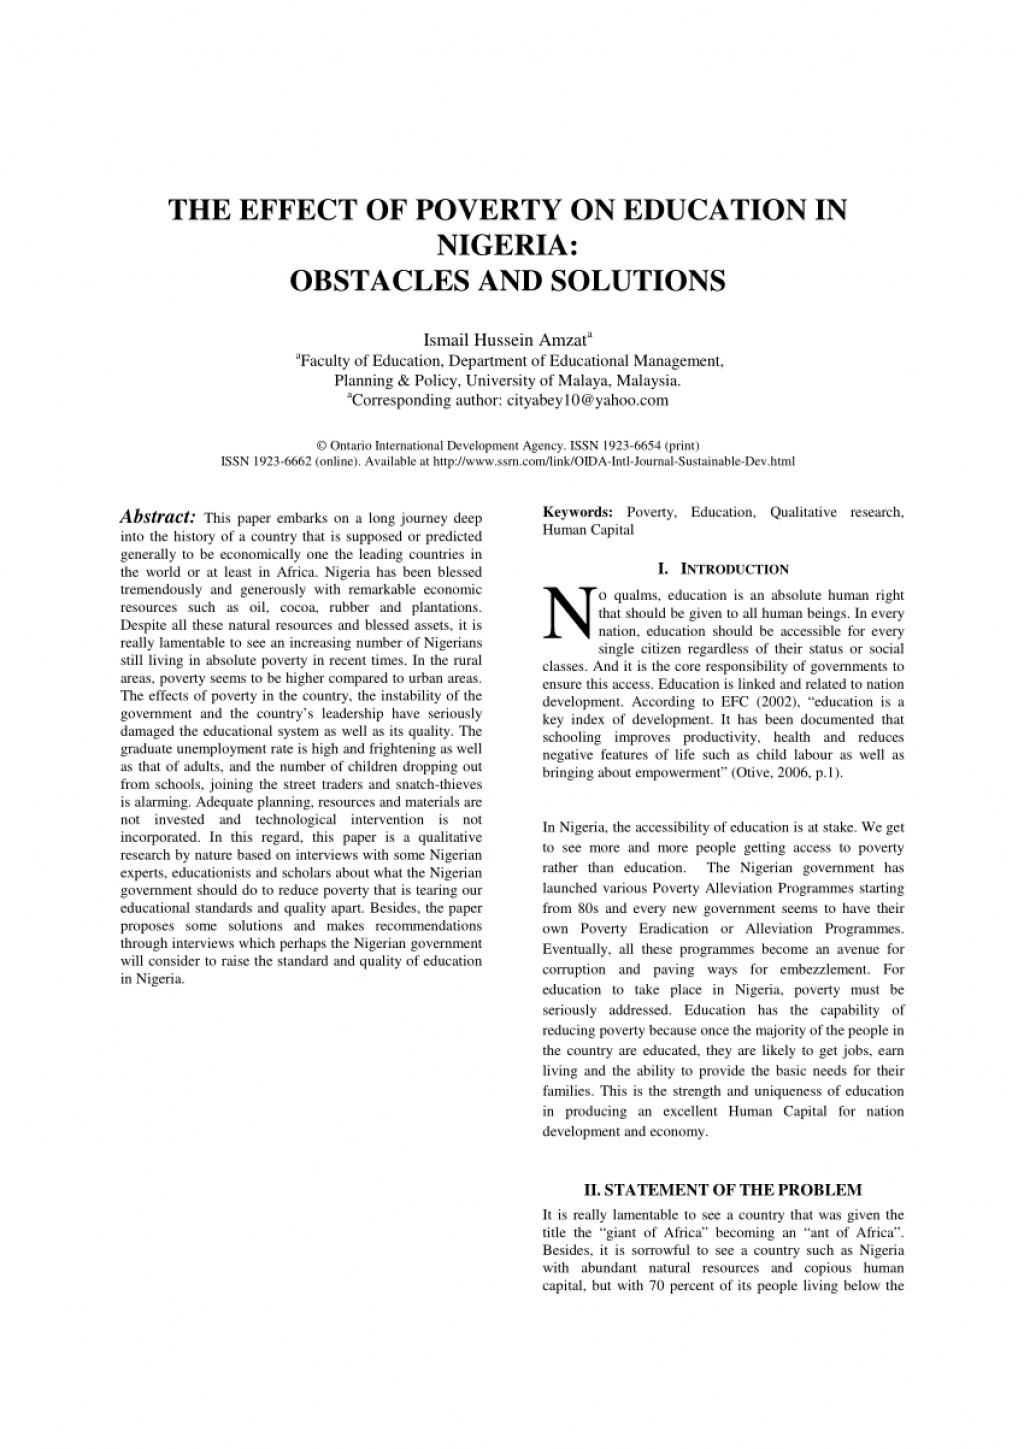 007 Essay Example Pdf The Effect Of Poverty On Education In Nigeria Obstacles And Is Best Weapon Against Largepr English Wondrous Problem India Solution Large